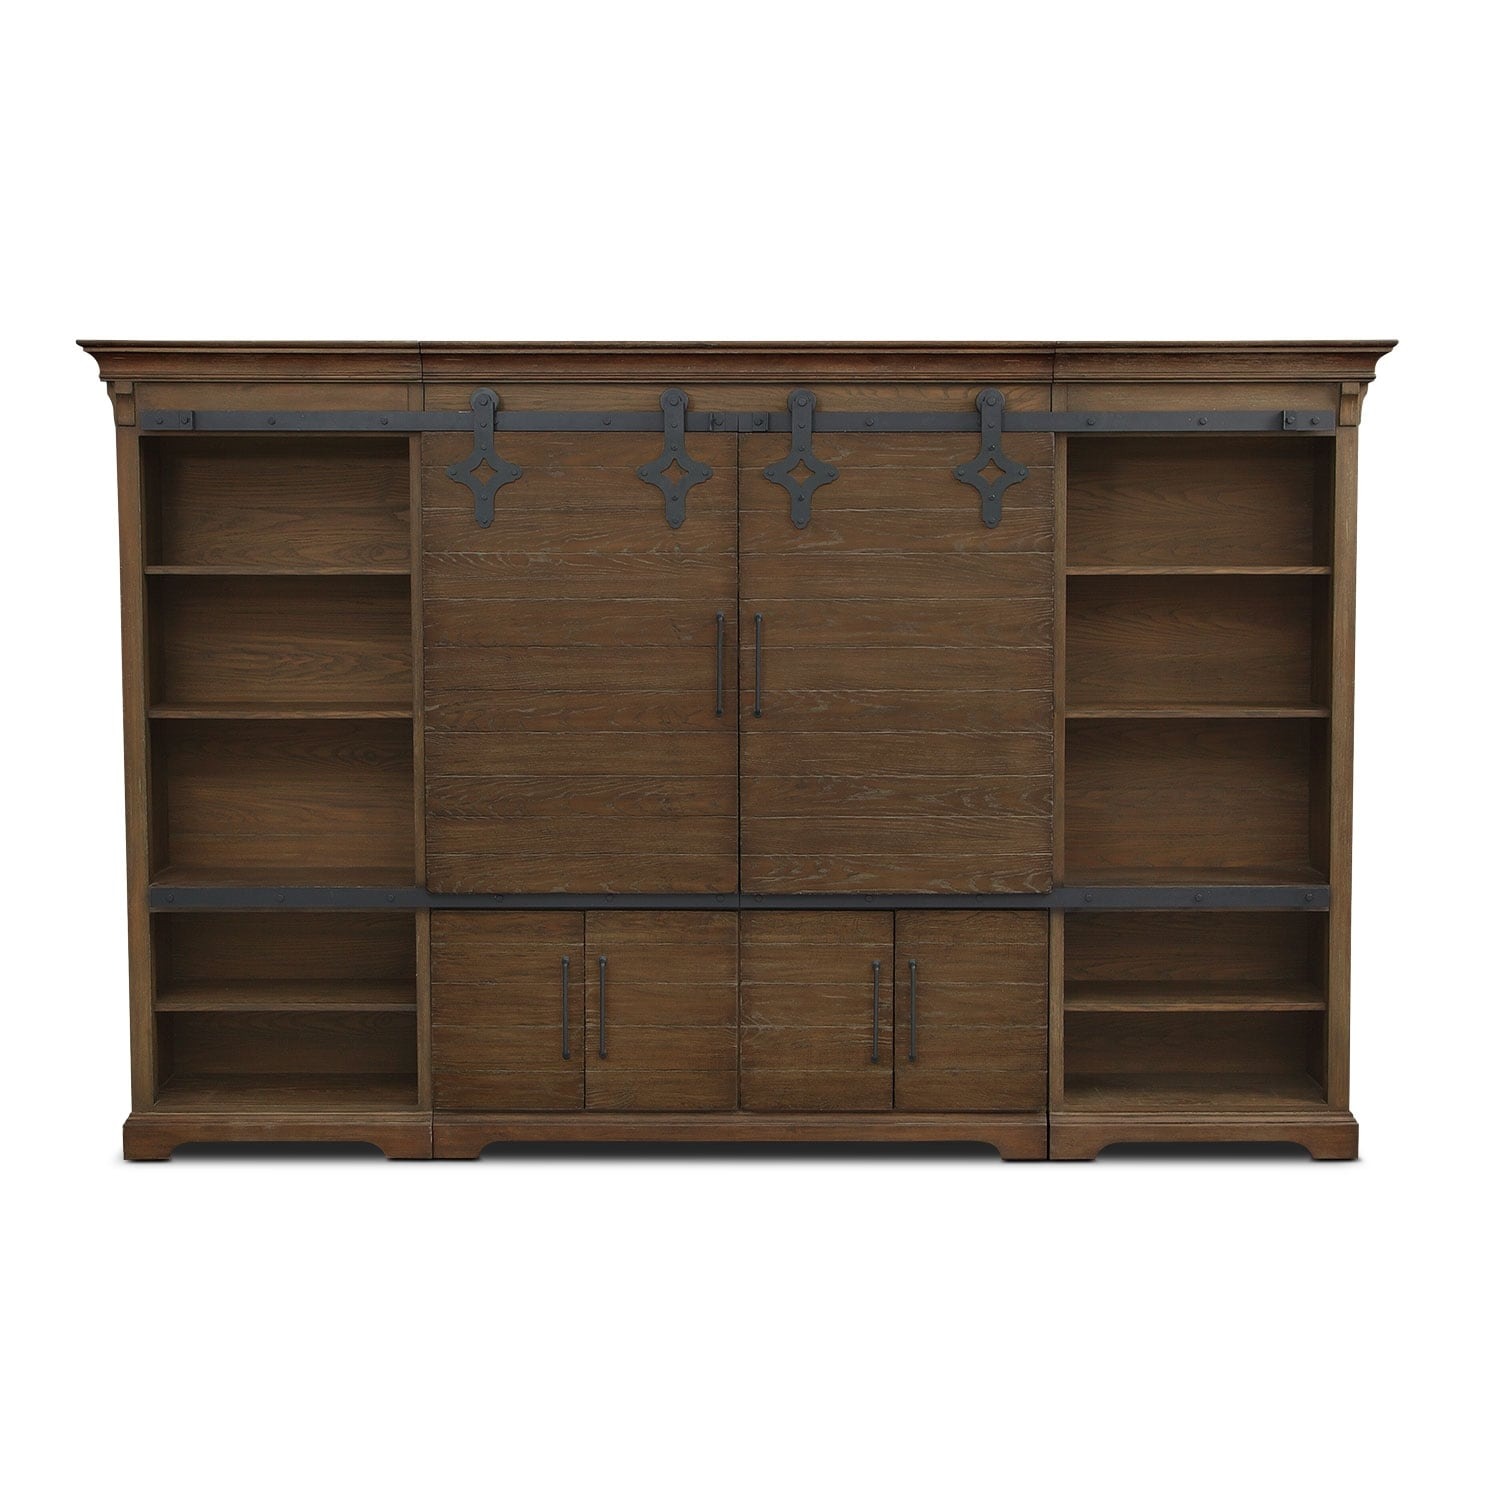 Union City Entertainment Wall Unit Brown Value City Furniture And Mattresses